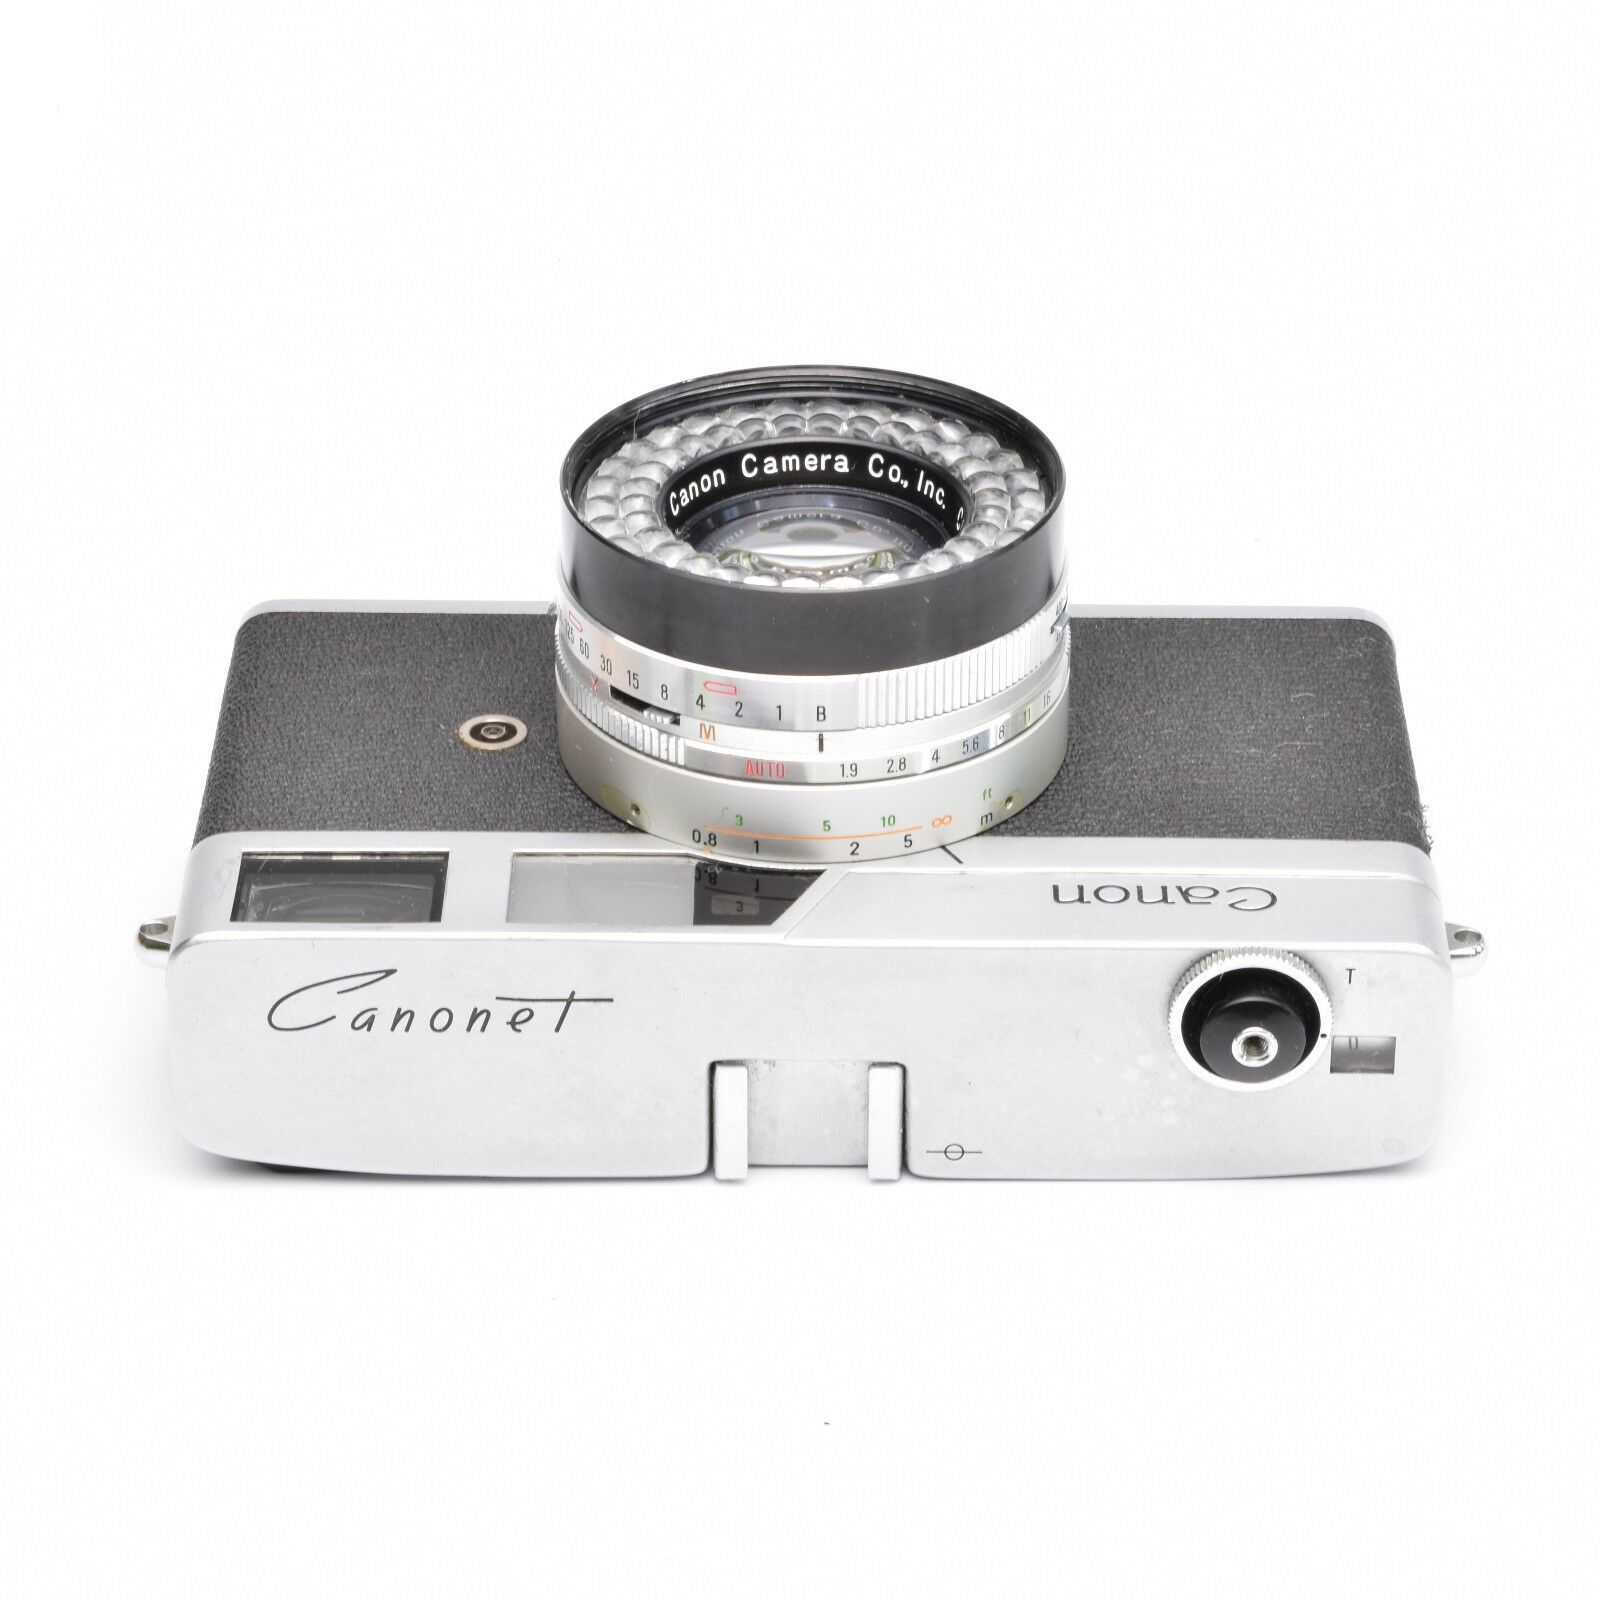 Canon Canonet Camera with 45mm f/1.9 Lens c.1961